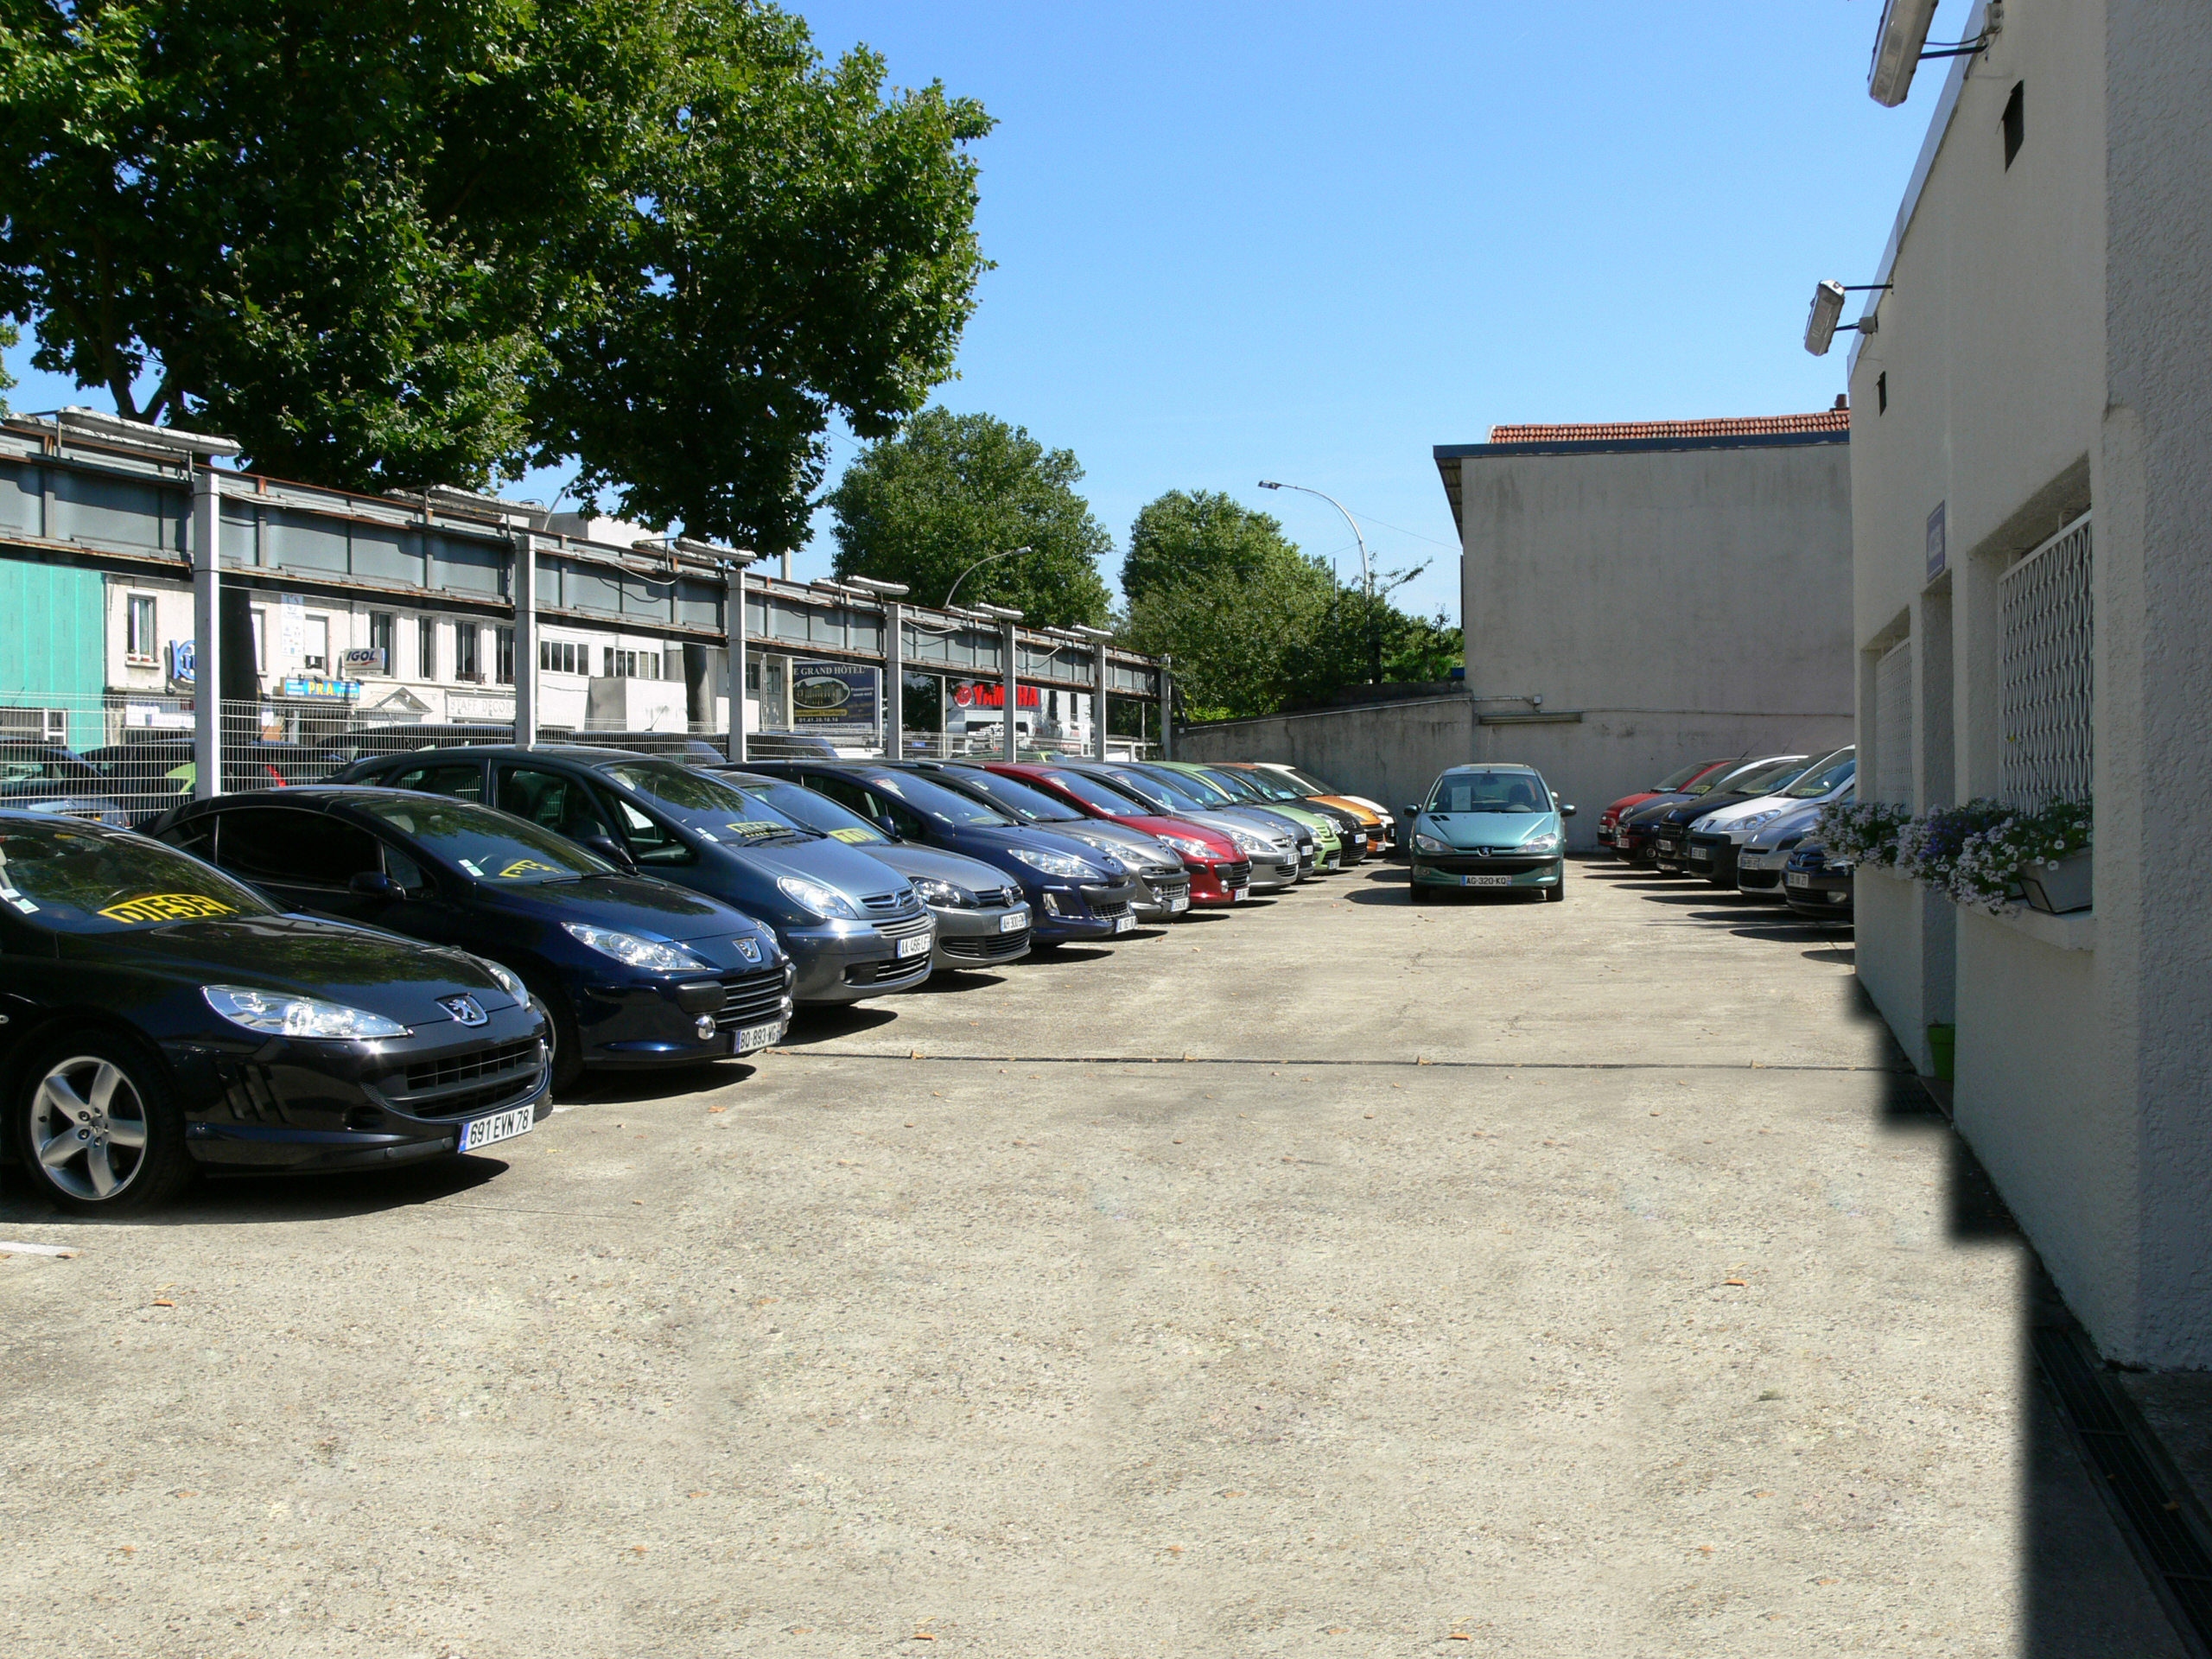 Garage vente voiture occasion deco garage voiture occasion ile de france 368548 garage vente - Voiture occasion luxembourg garage ...